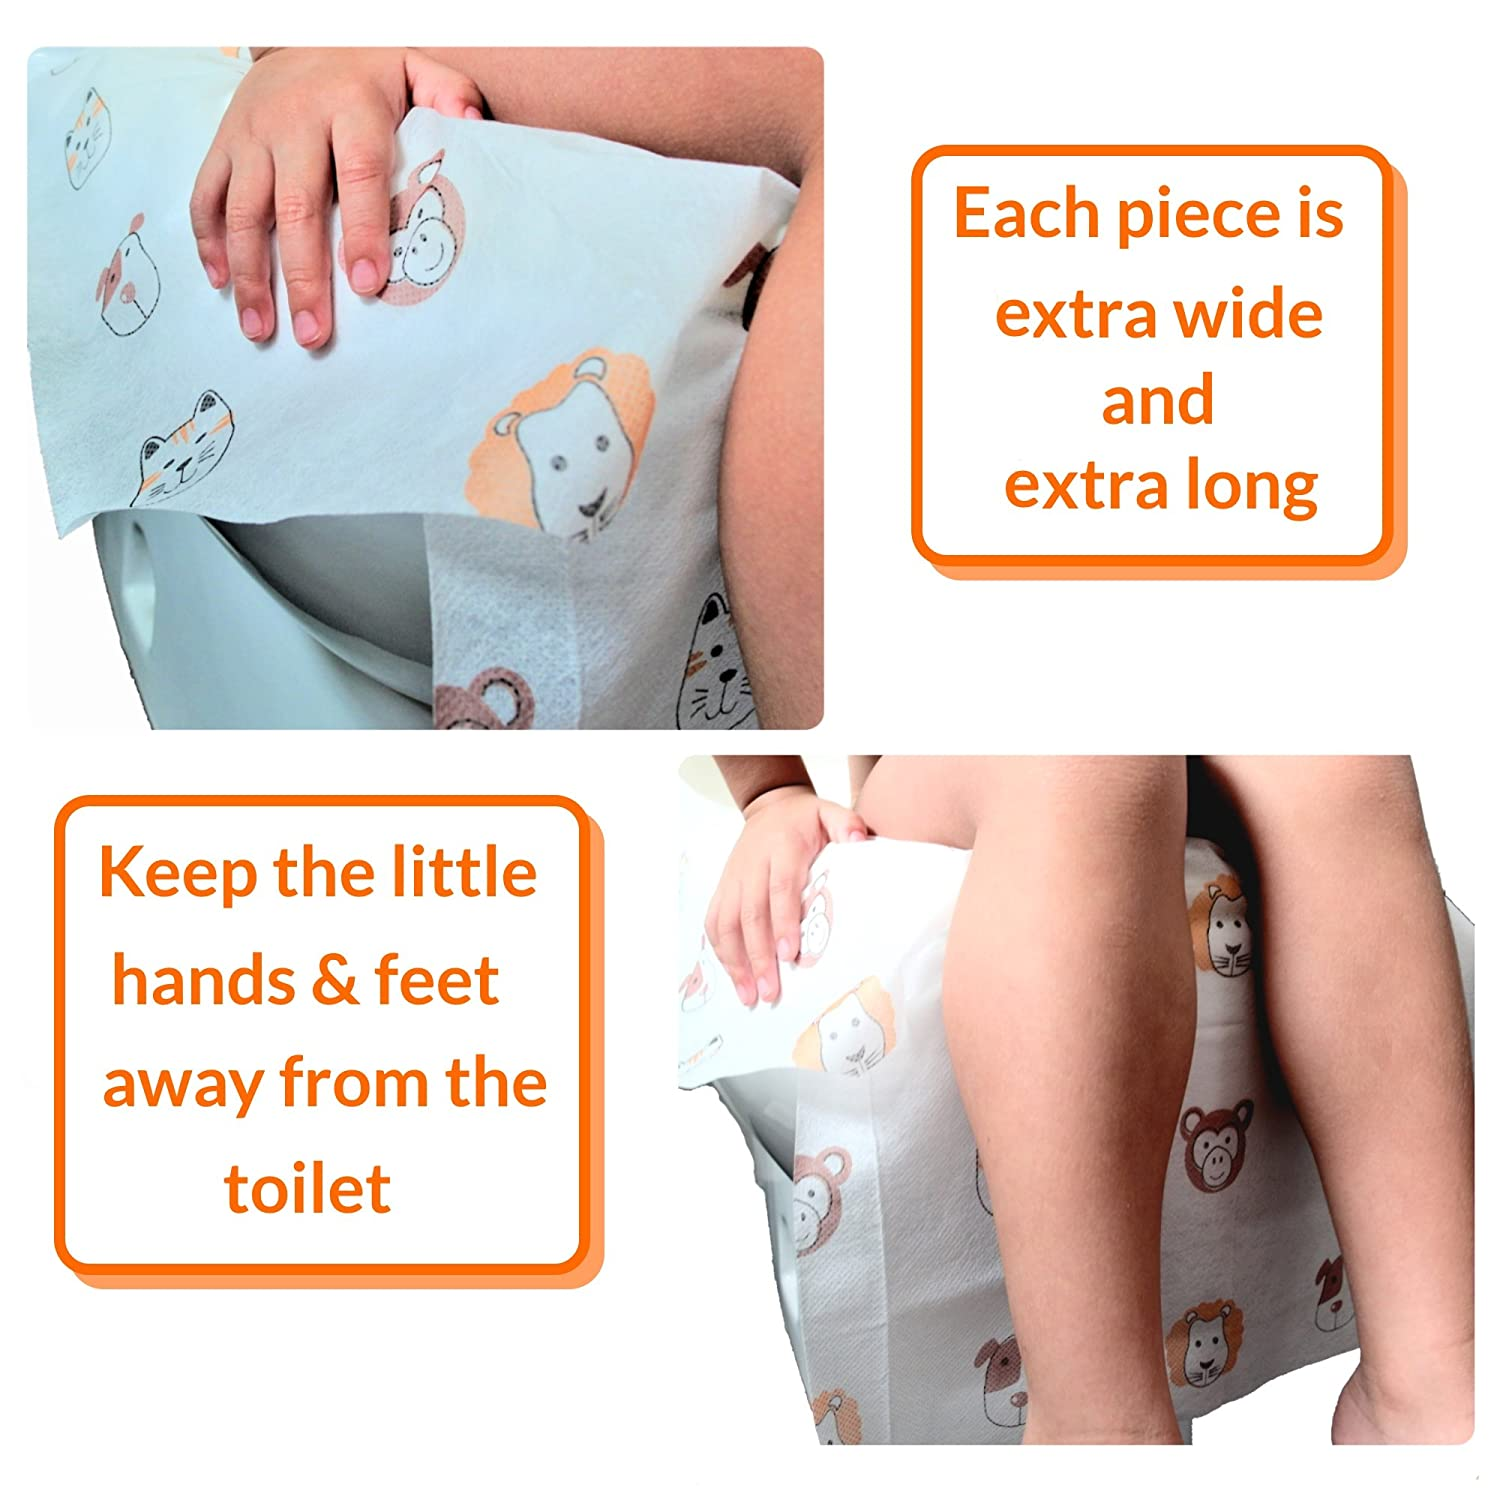 10 Disposable Toilet Seat Covers Extra Large Size Perfect for Toddlers Potty Training and Great for Travel Both Kids and Adults